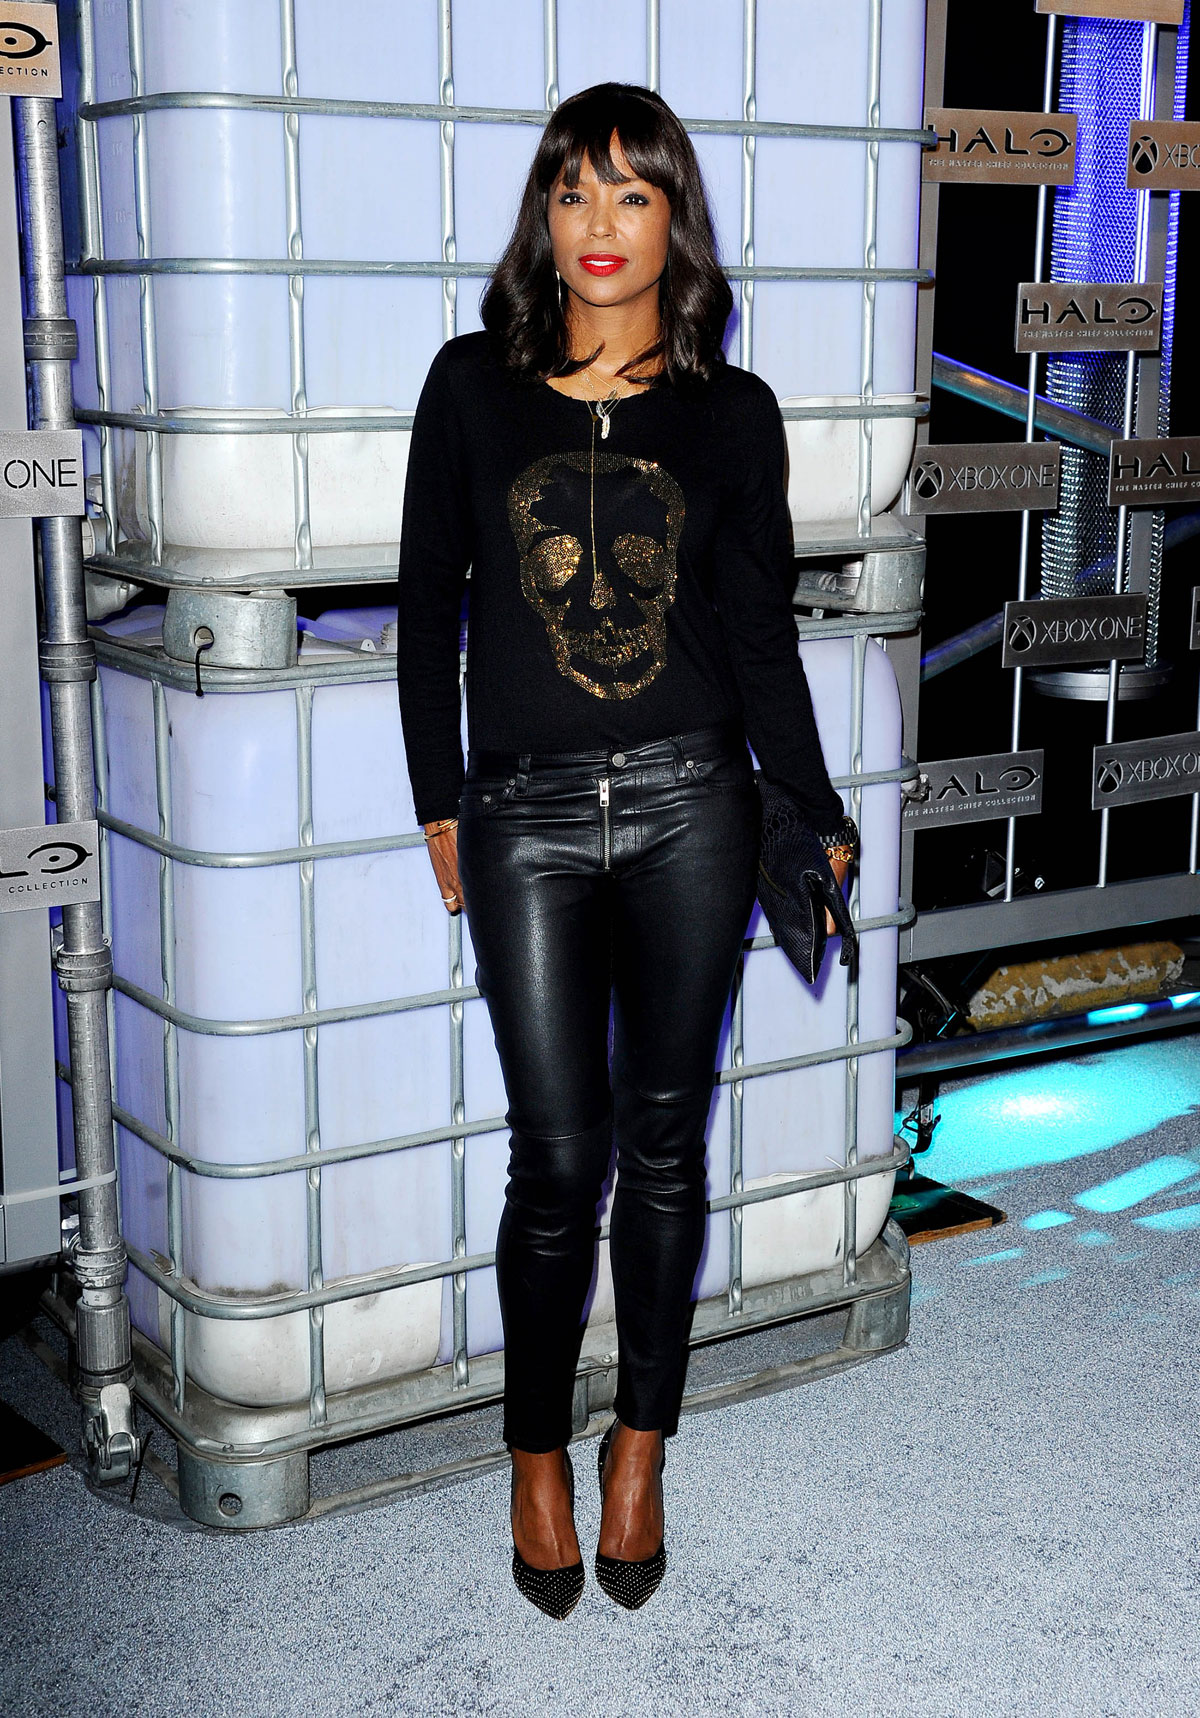 Aisha Tyler Arrives For Halofest Halo The Master Chief